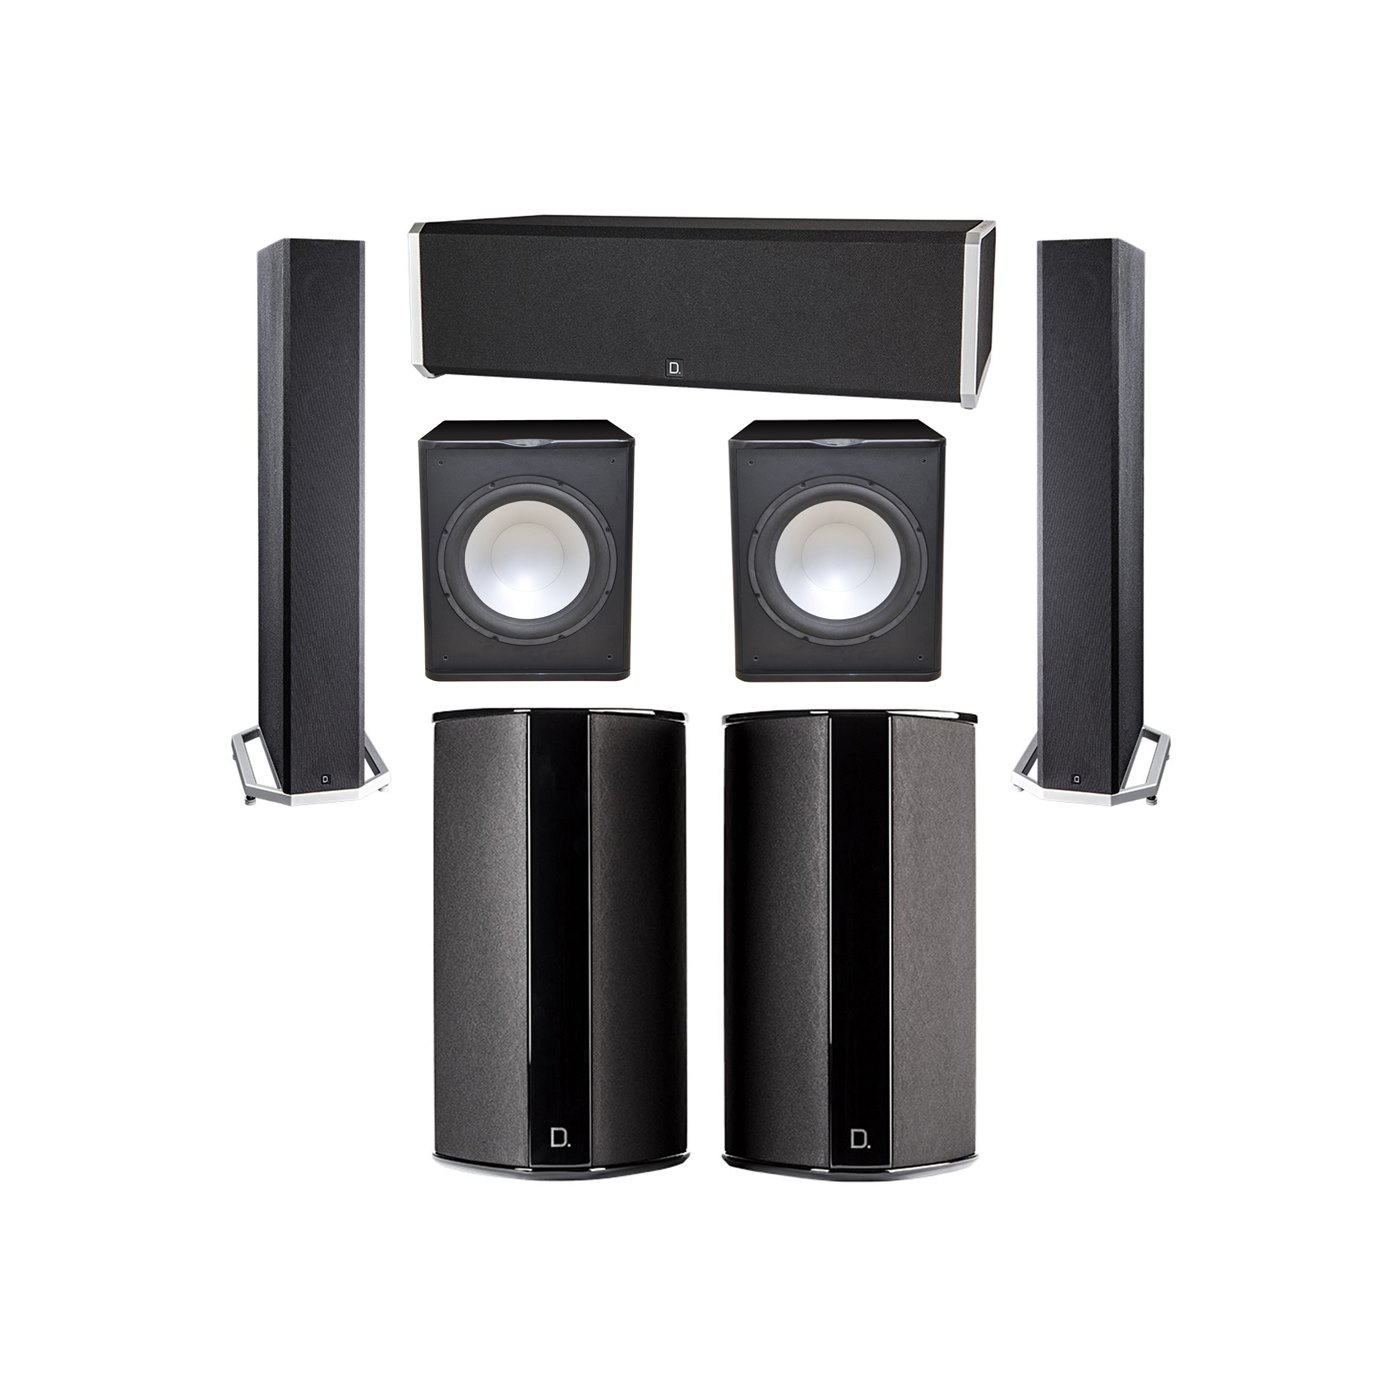 Definitive Technology 5.2 System with 2 BP9040 Tower Speakers, 1 CS9040 Center Channel Speaker, 2 SR9080 Surround Speaker, 2 Premier Acoustic PA-150 Subwoofer